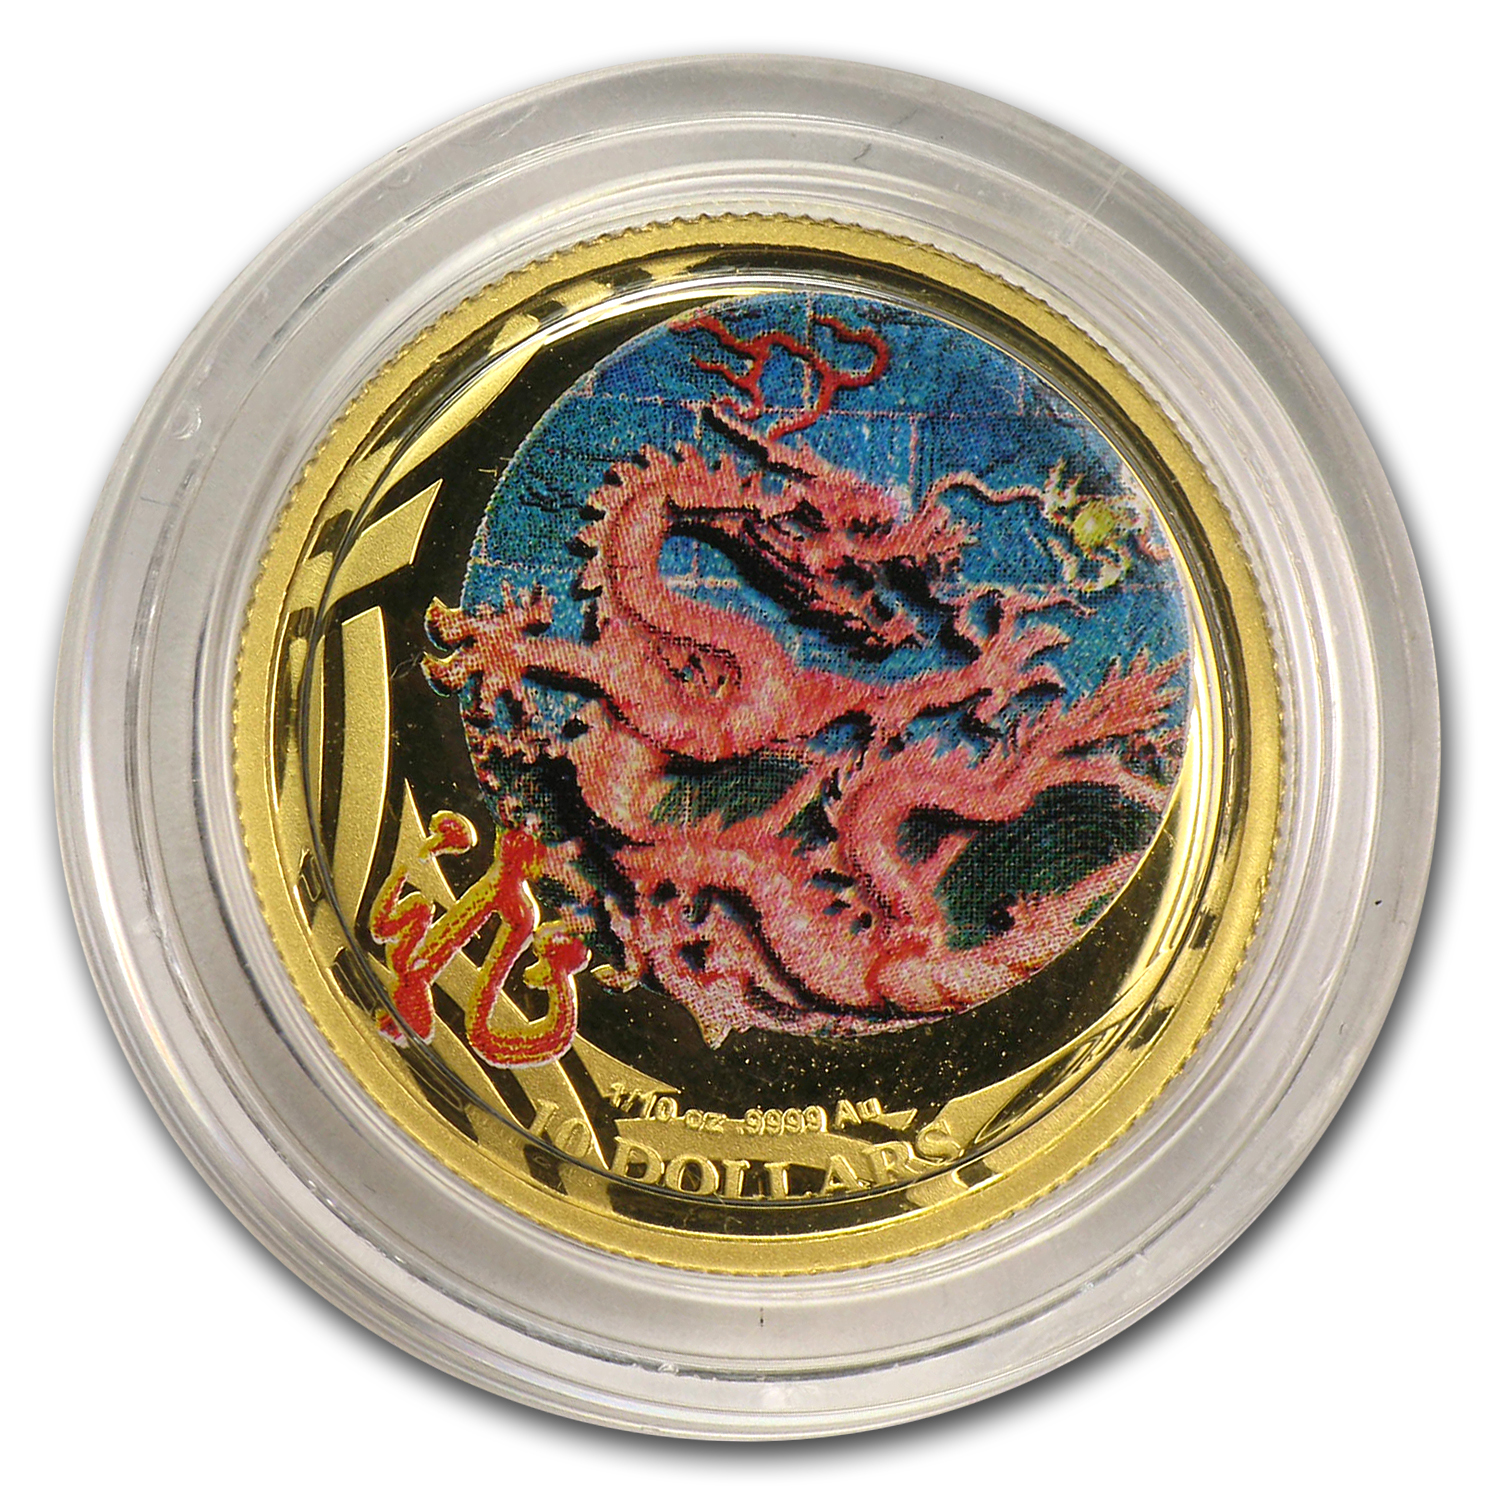 Royal Australian Mint 2012 1/10 oz Gold Proof - Lunar Dragons